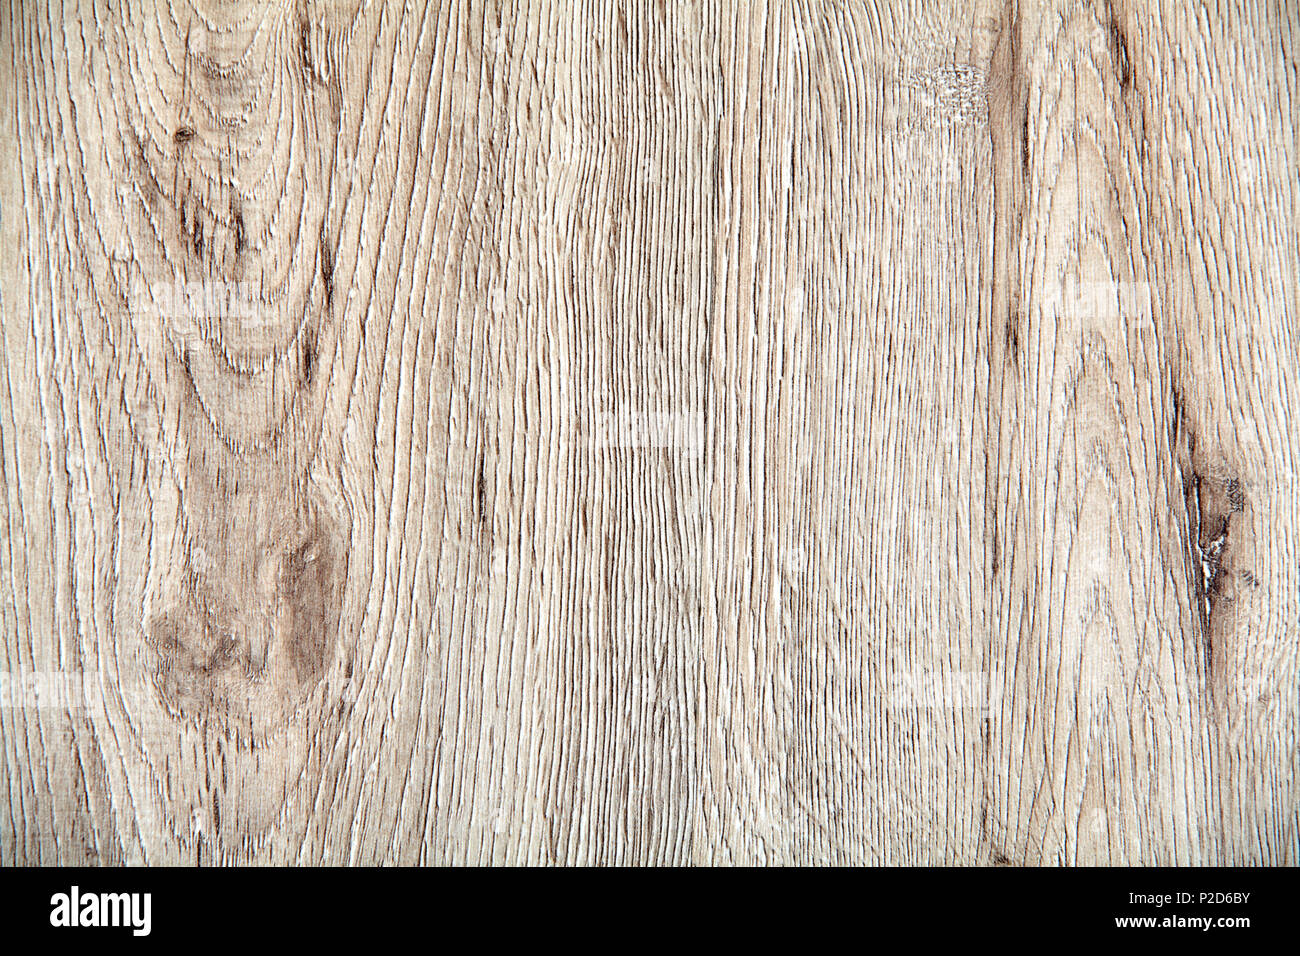 Texture For Backdrop Wooden Plank Bleached Oak Stock Photo